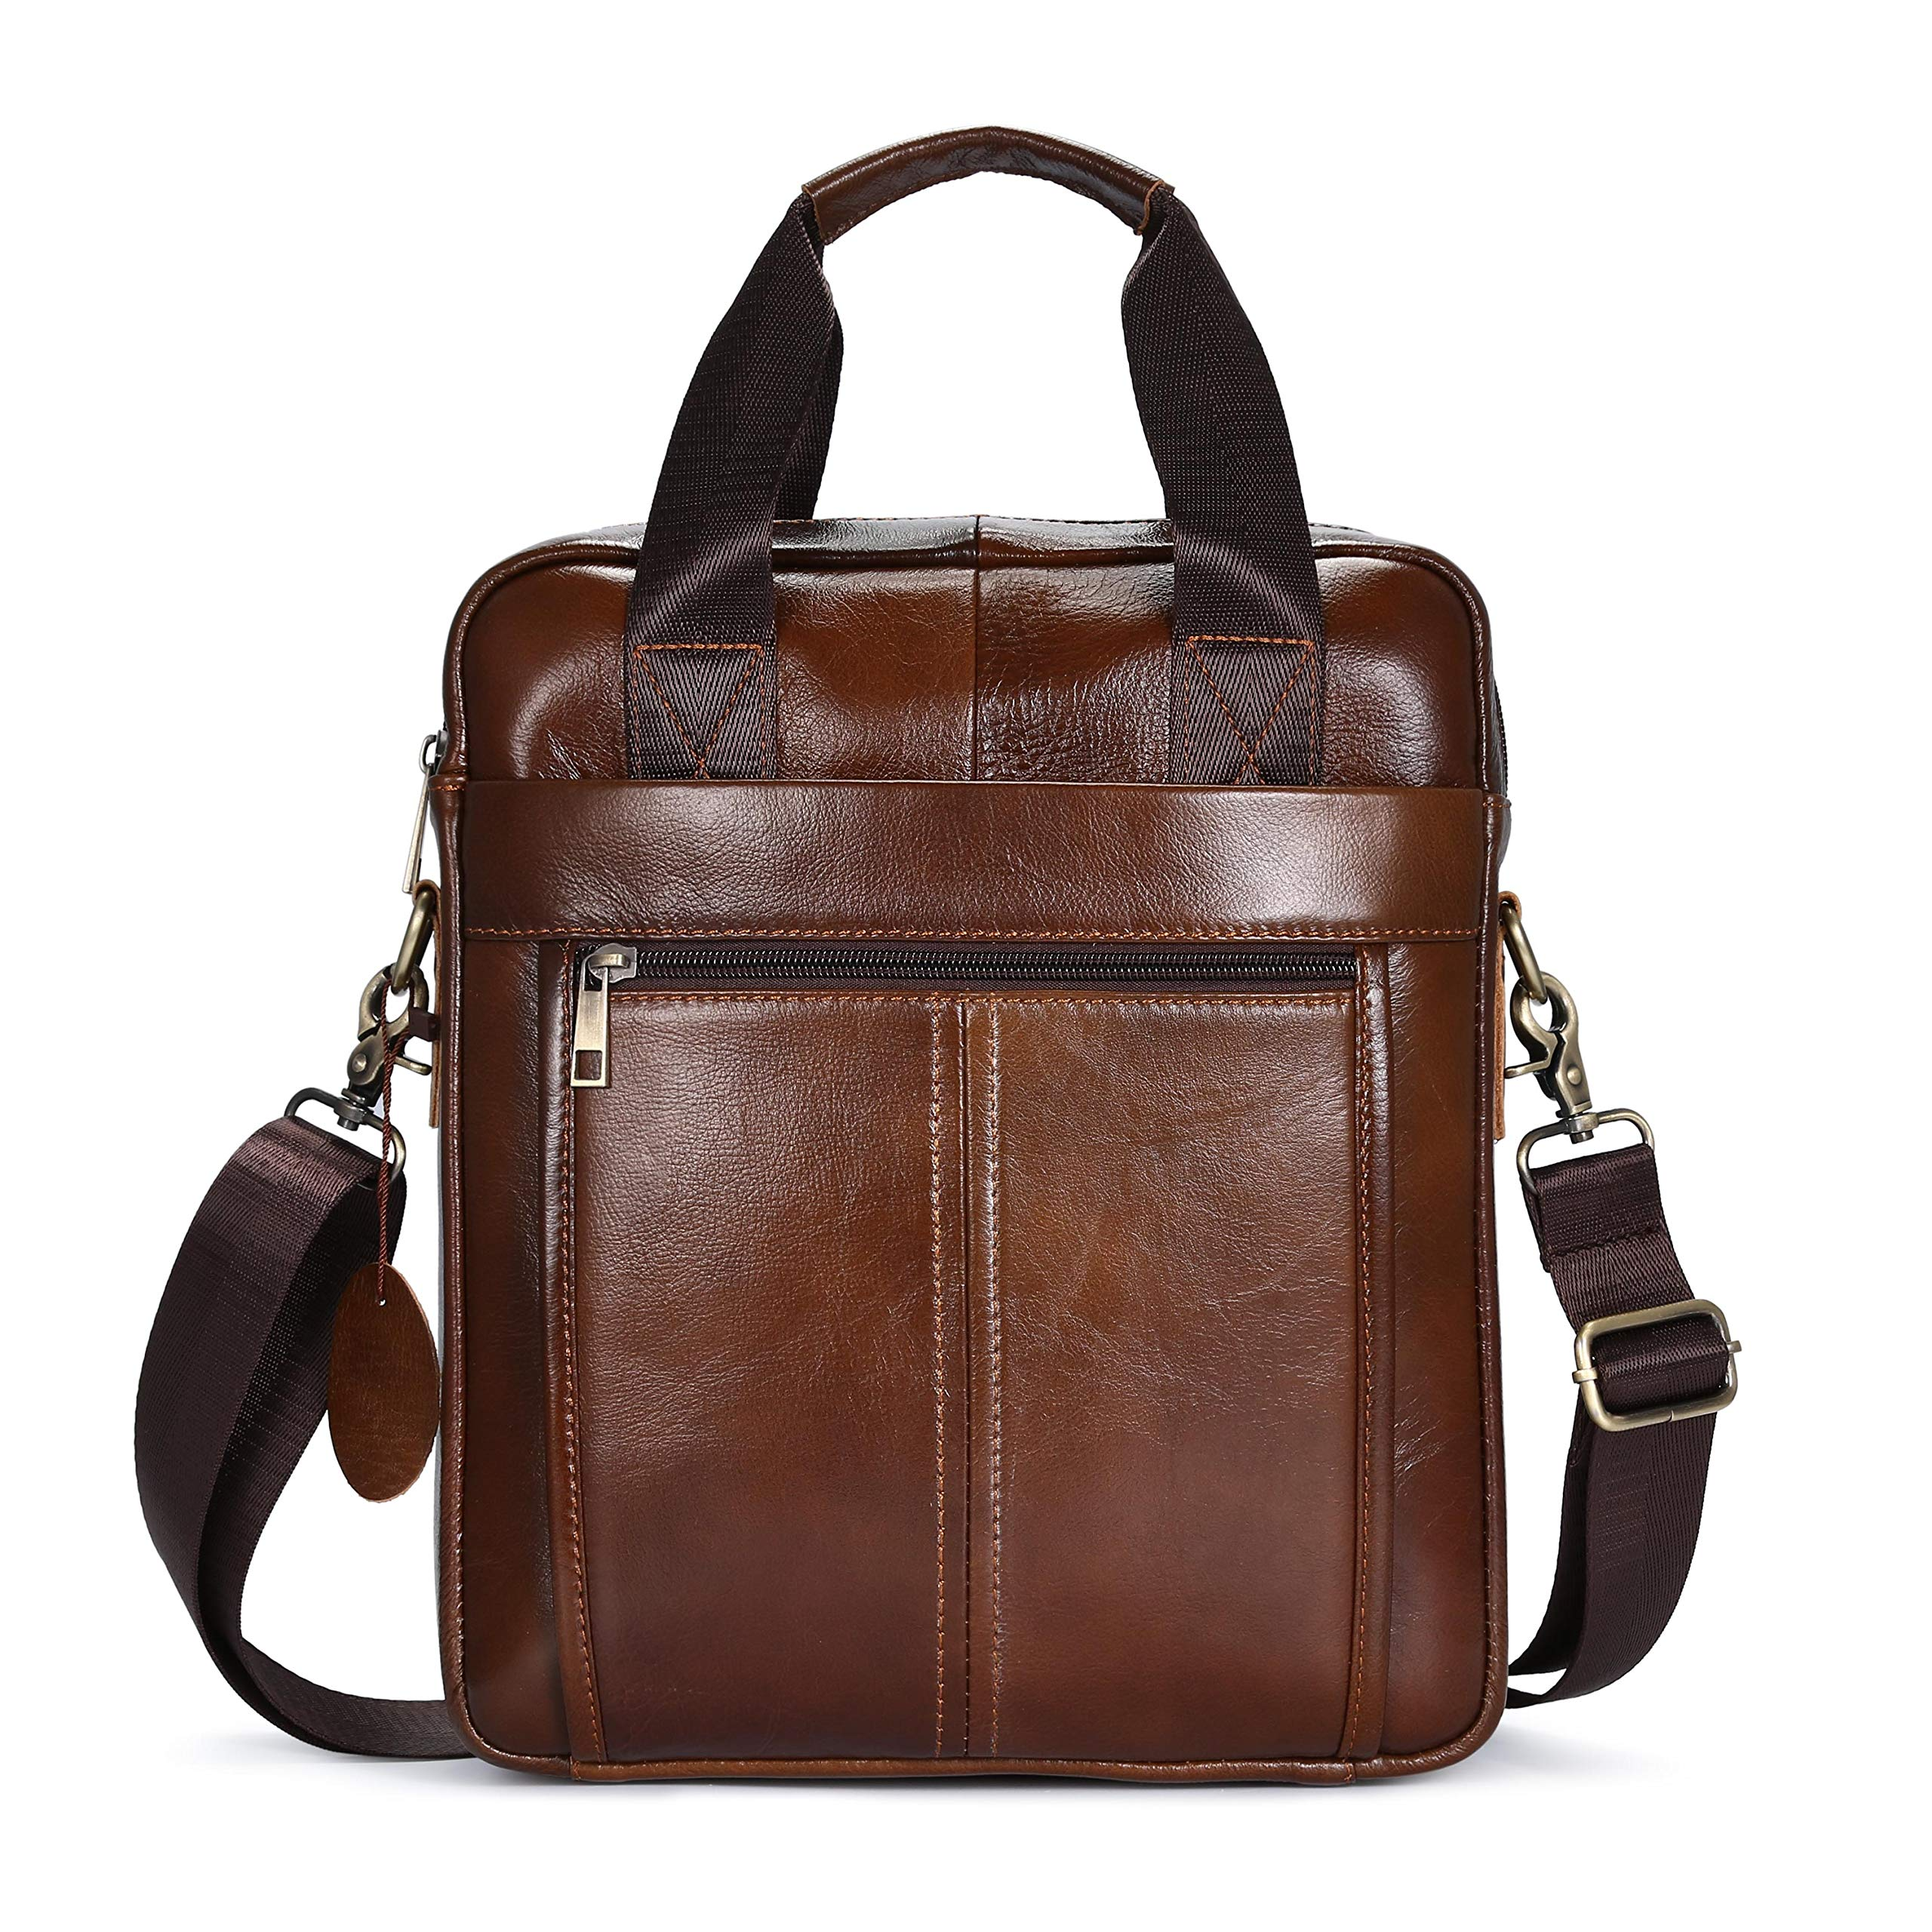 BAIGIO Vintage Man Bags with Handle and Strap Genuine Leather Cross Body Messenger Bag Travel 9.7 Inch Business Shoulder Bag, Brown